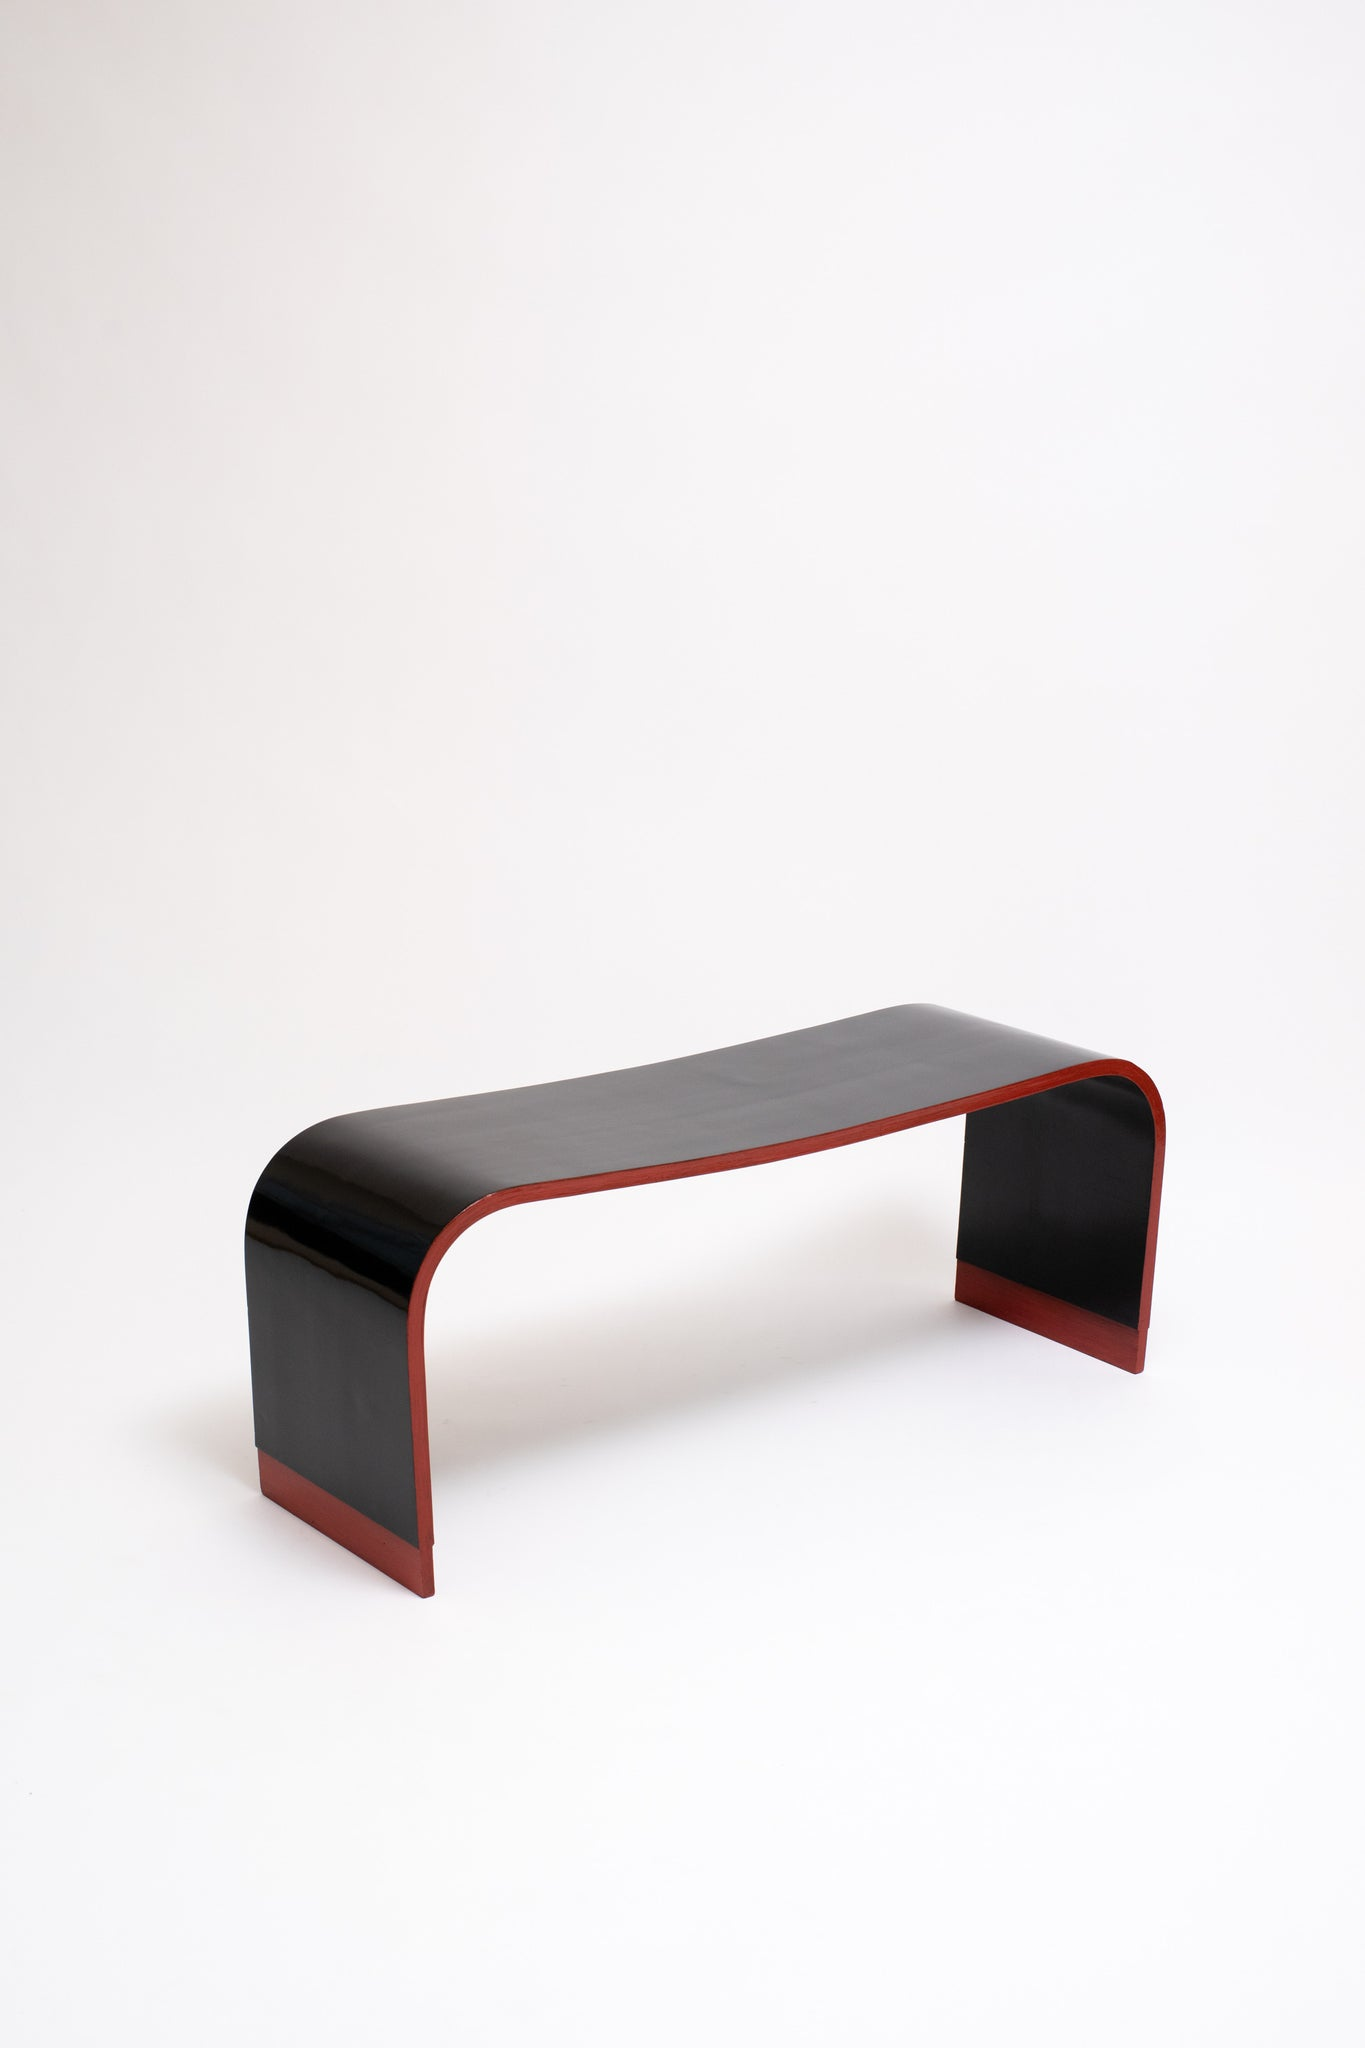 BENCH. MARCELLO PIACENTINI, C. 1935